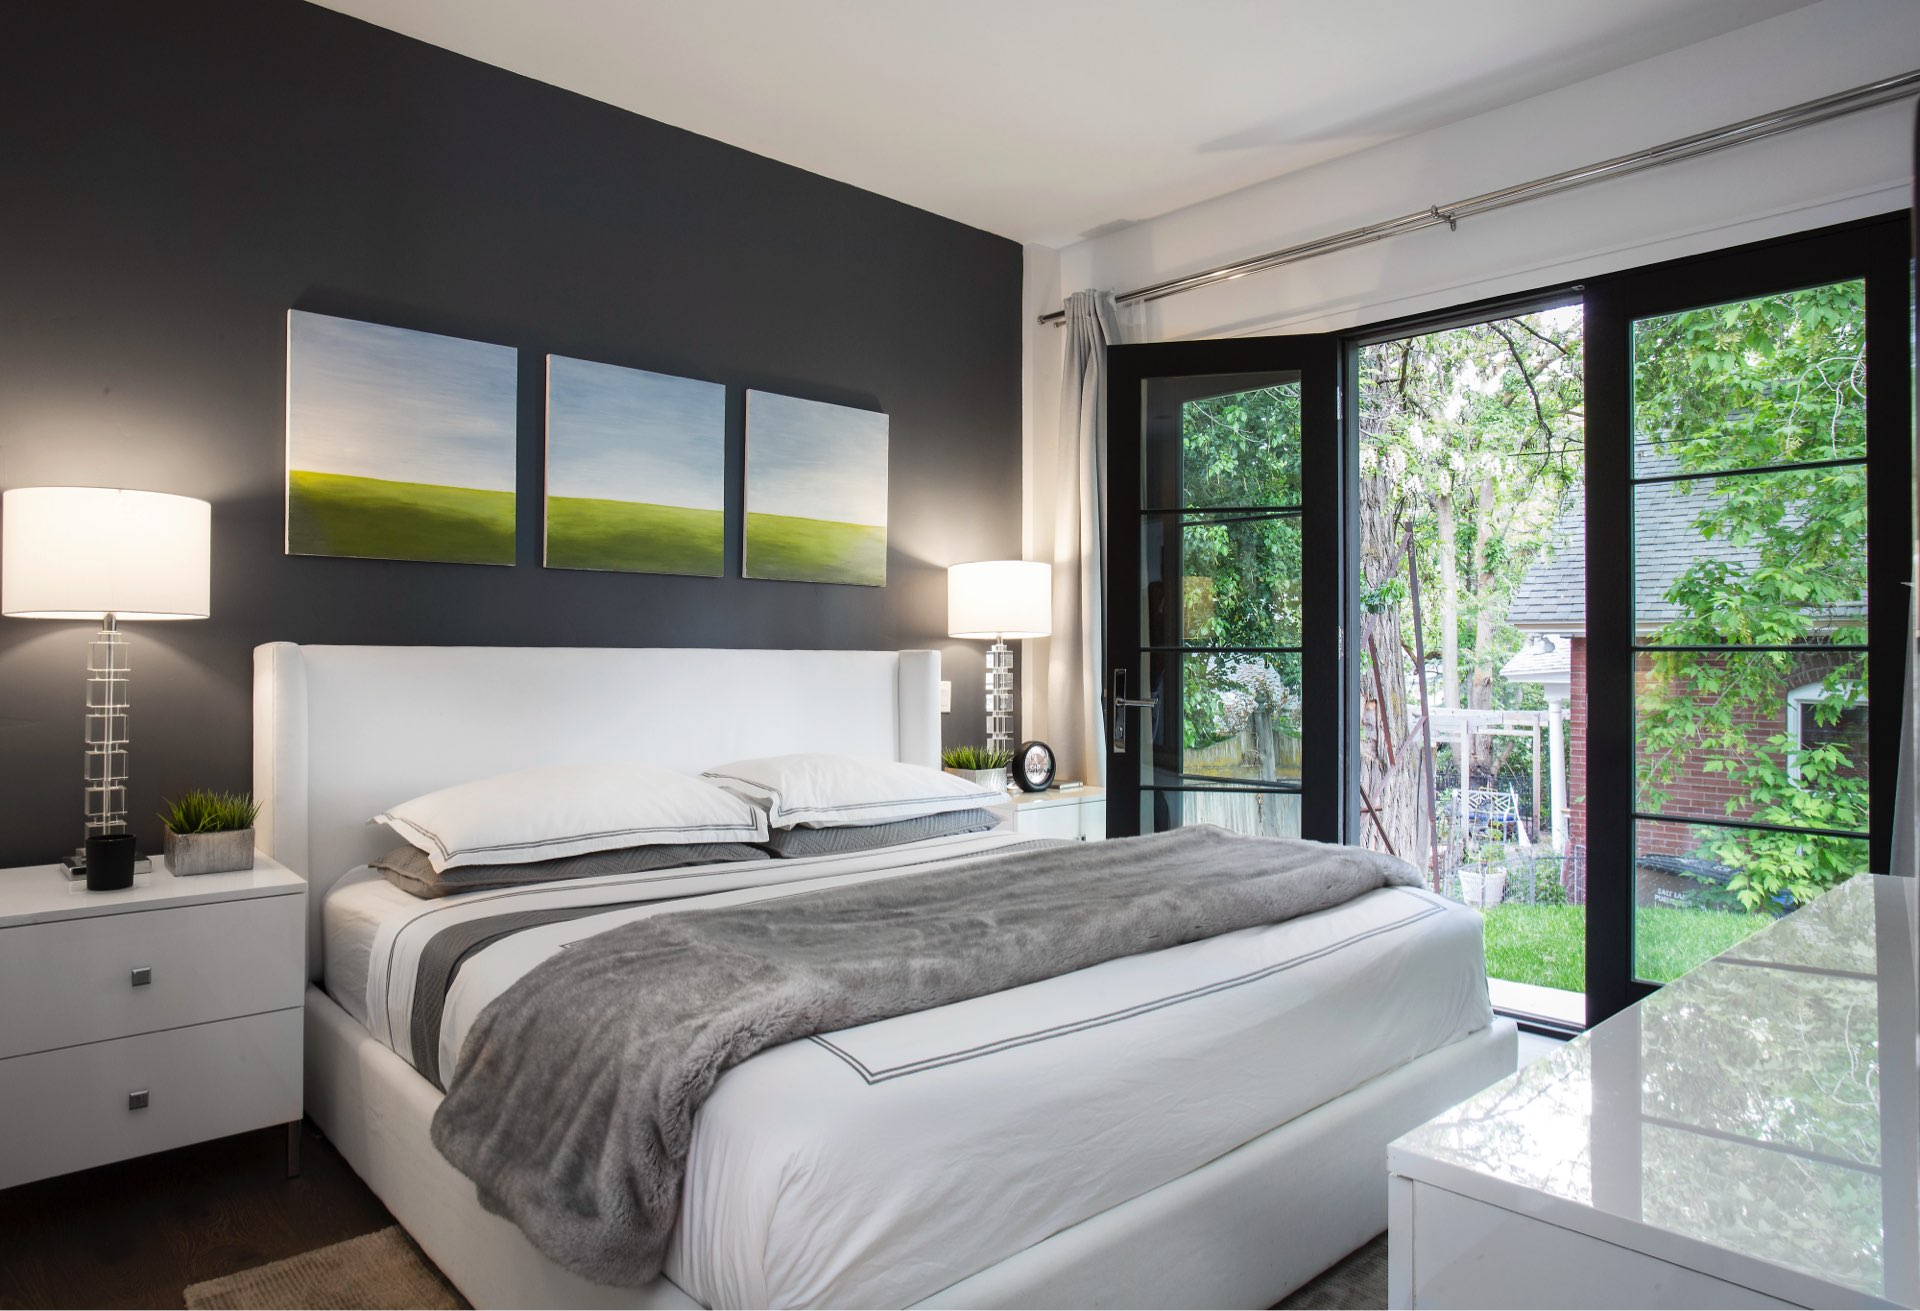 Bedroom, House 970, residential architectural design by Elliott Workgroup